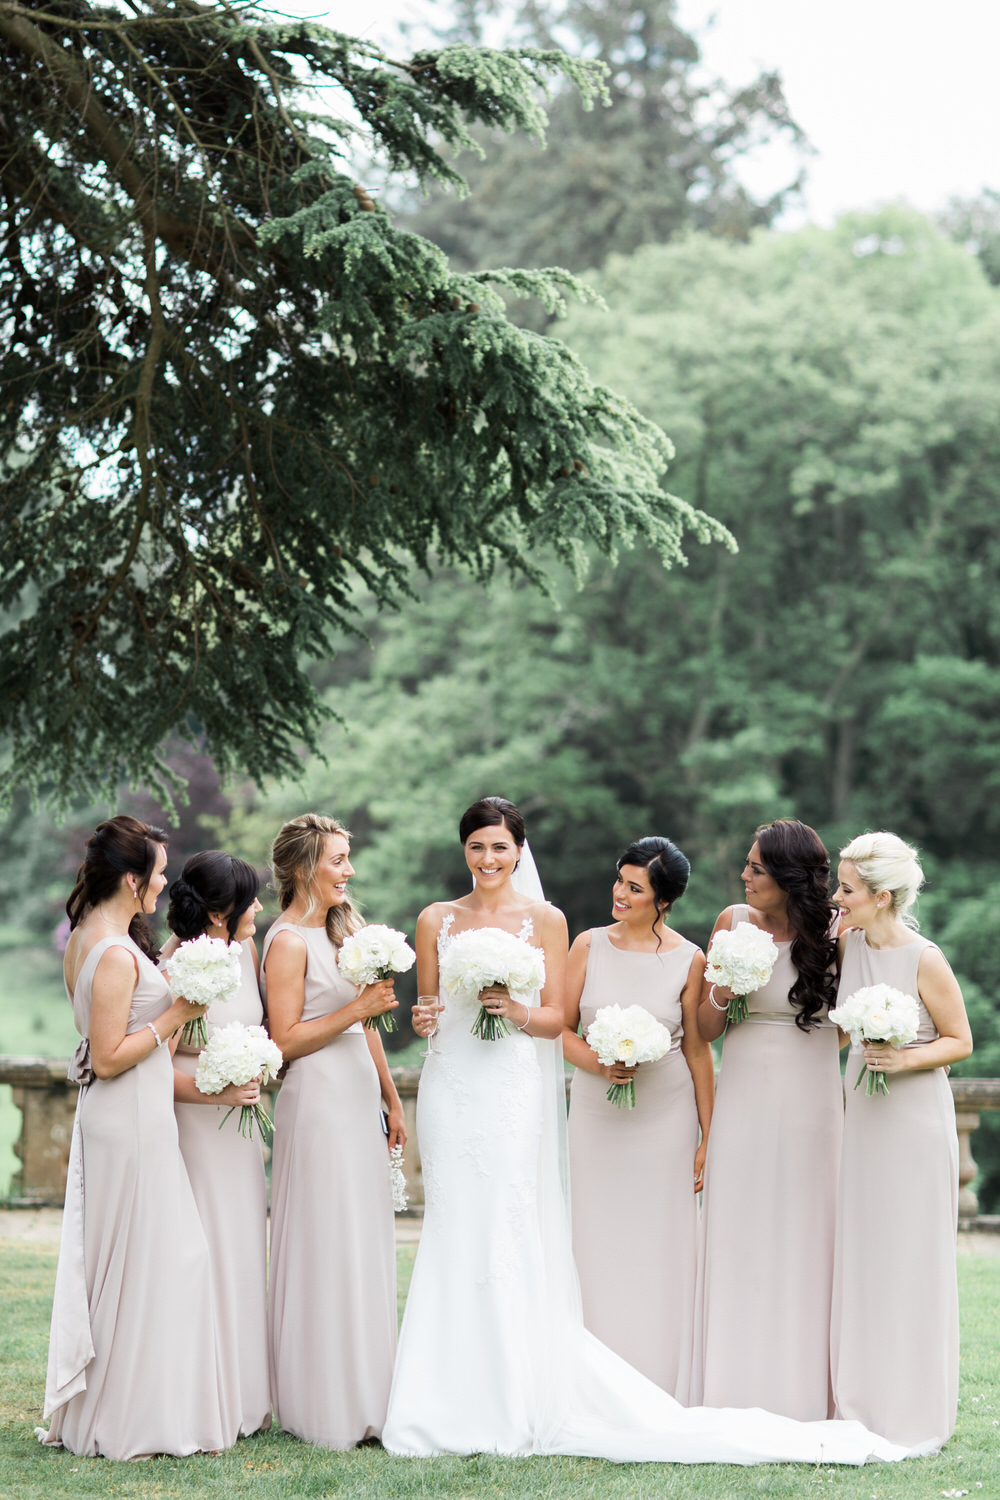 Group Wedding Photography: Alternative Wedding Group Shots With The List RMW Suppliers